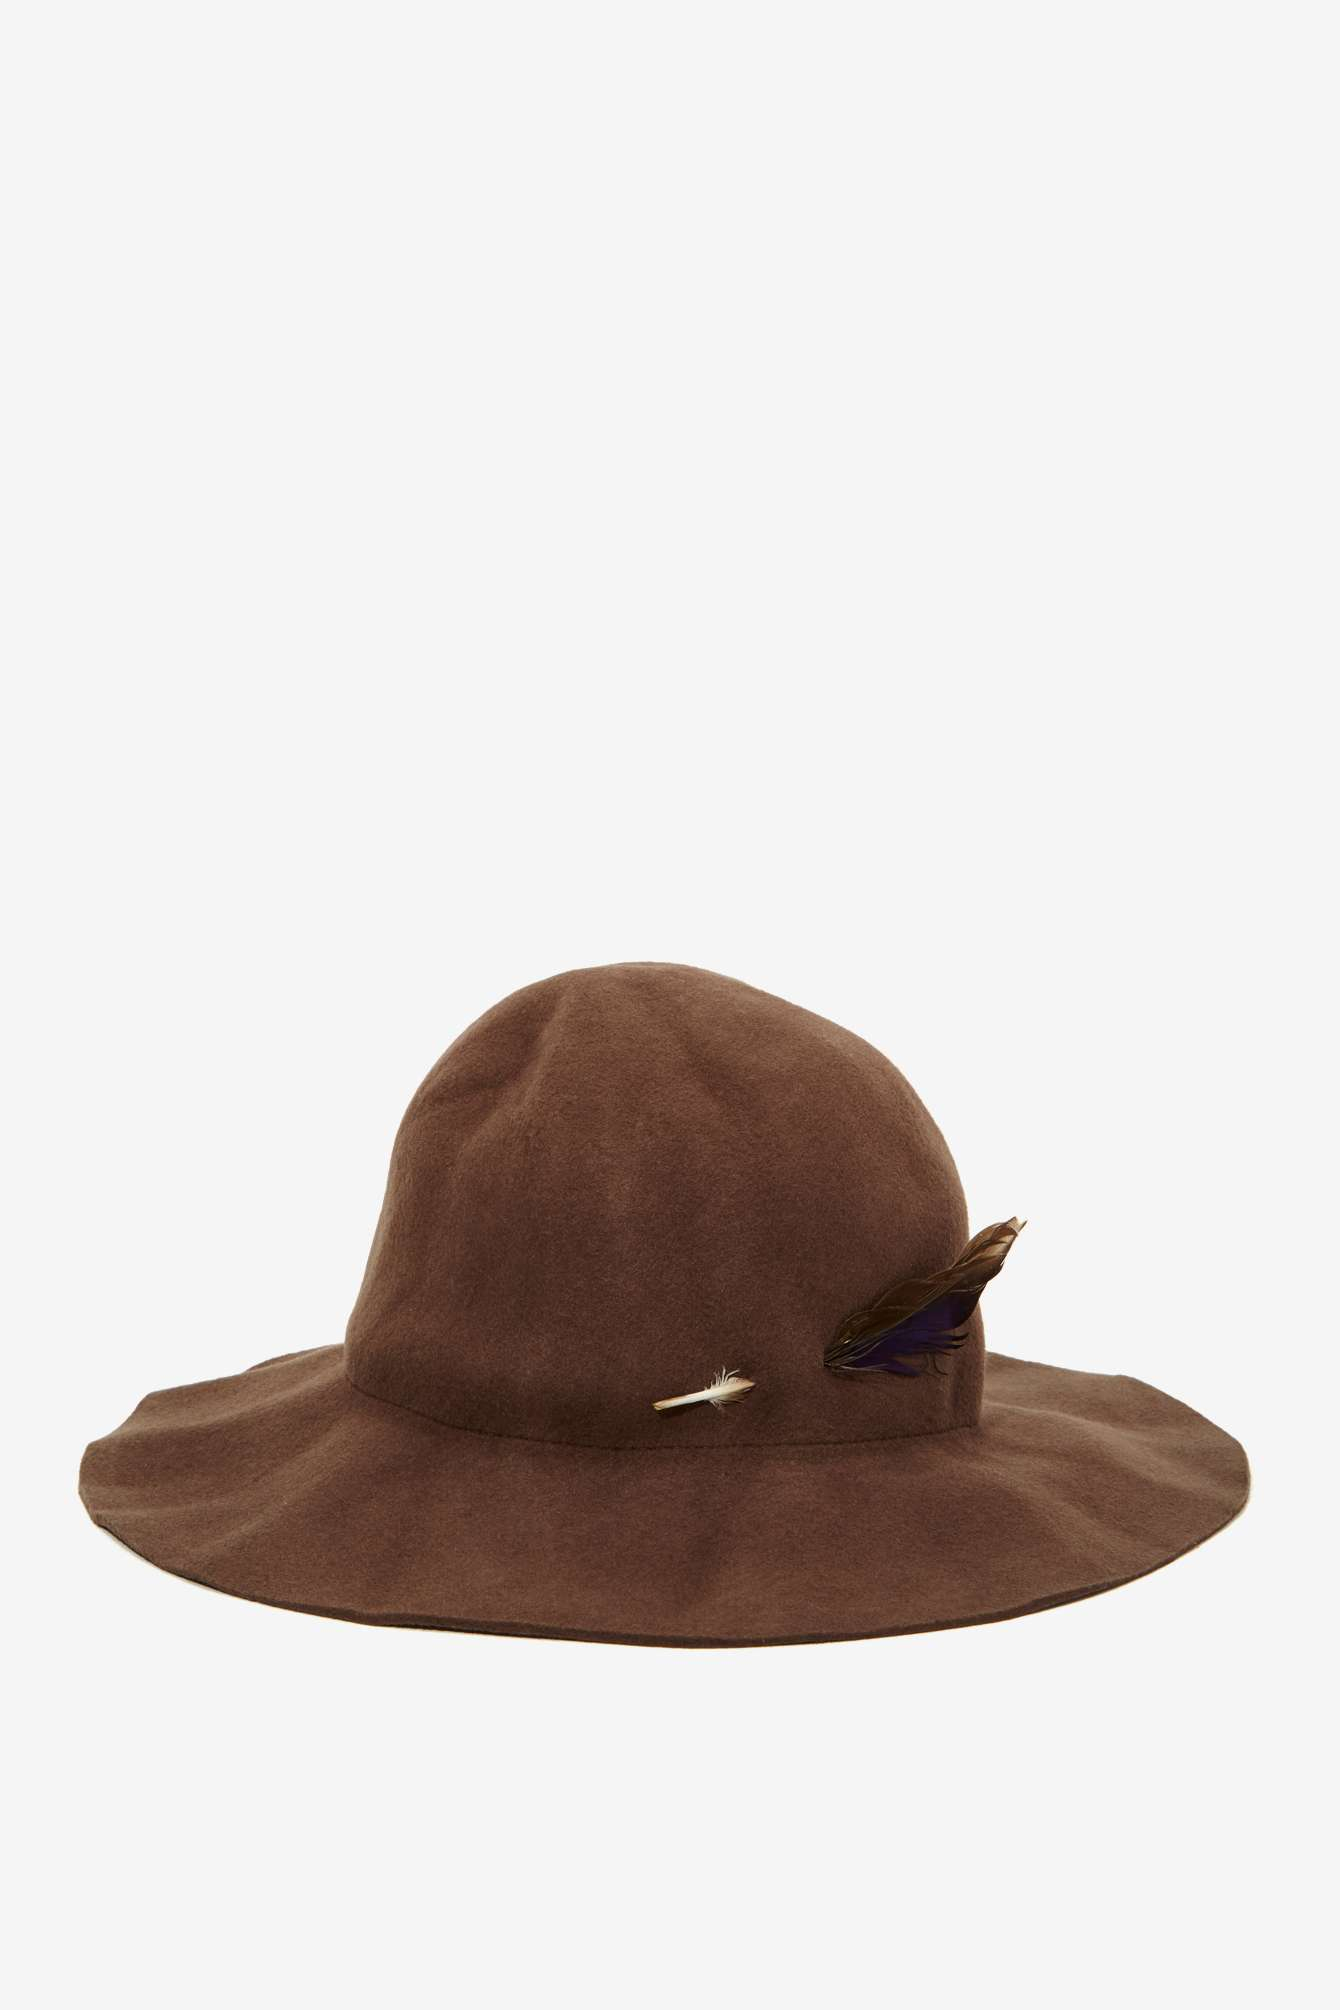 32f6d8cf1518a Nasty Gal Brixton Jethro Wool Hat in Brown - Lyst